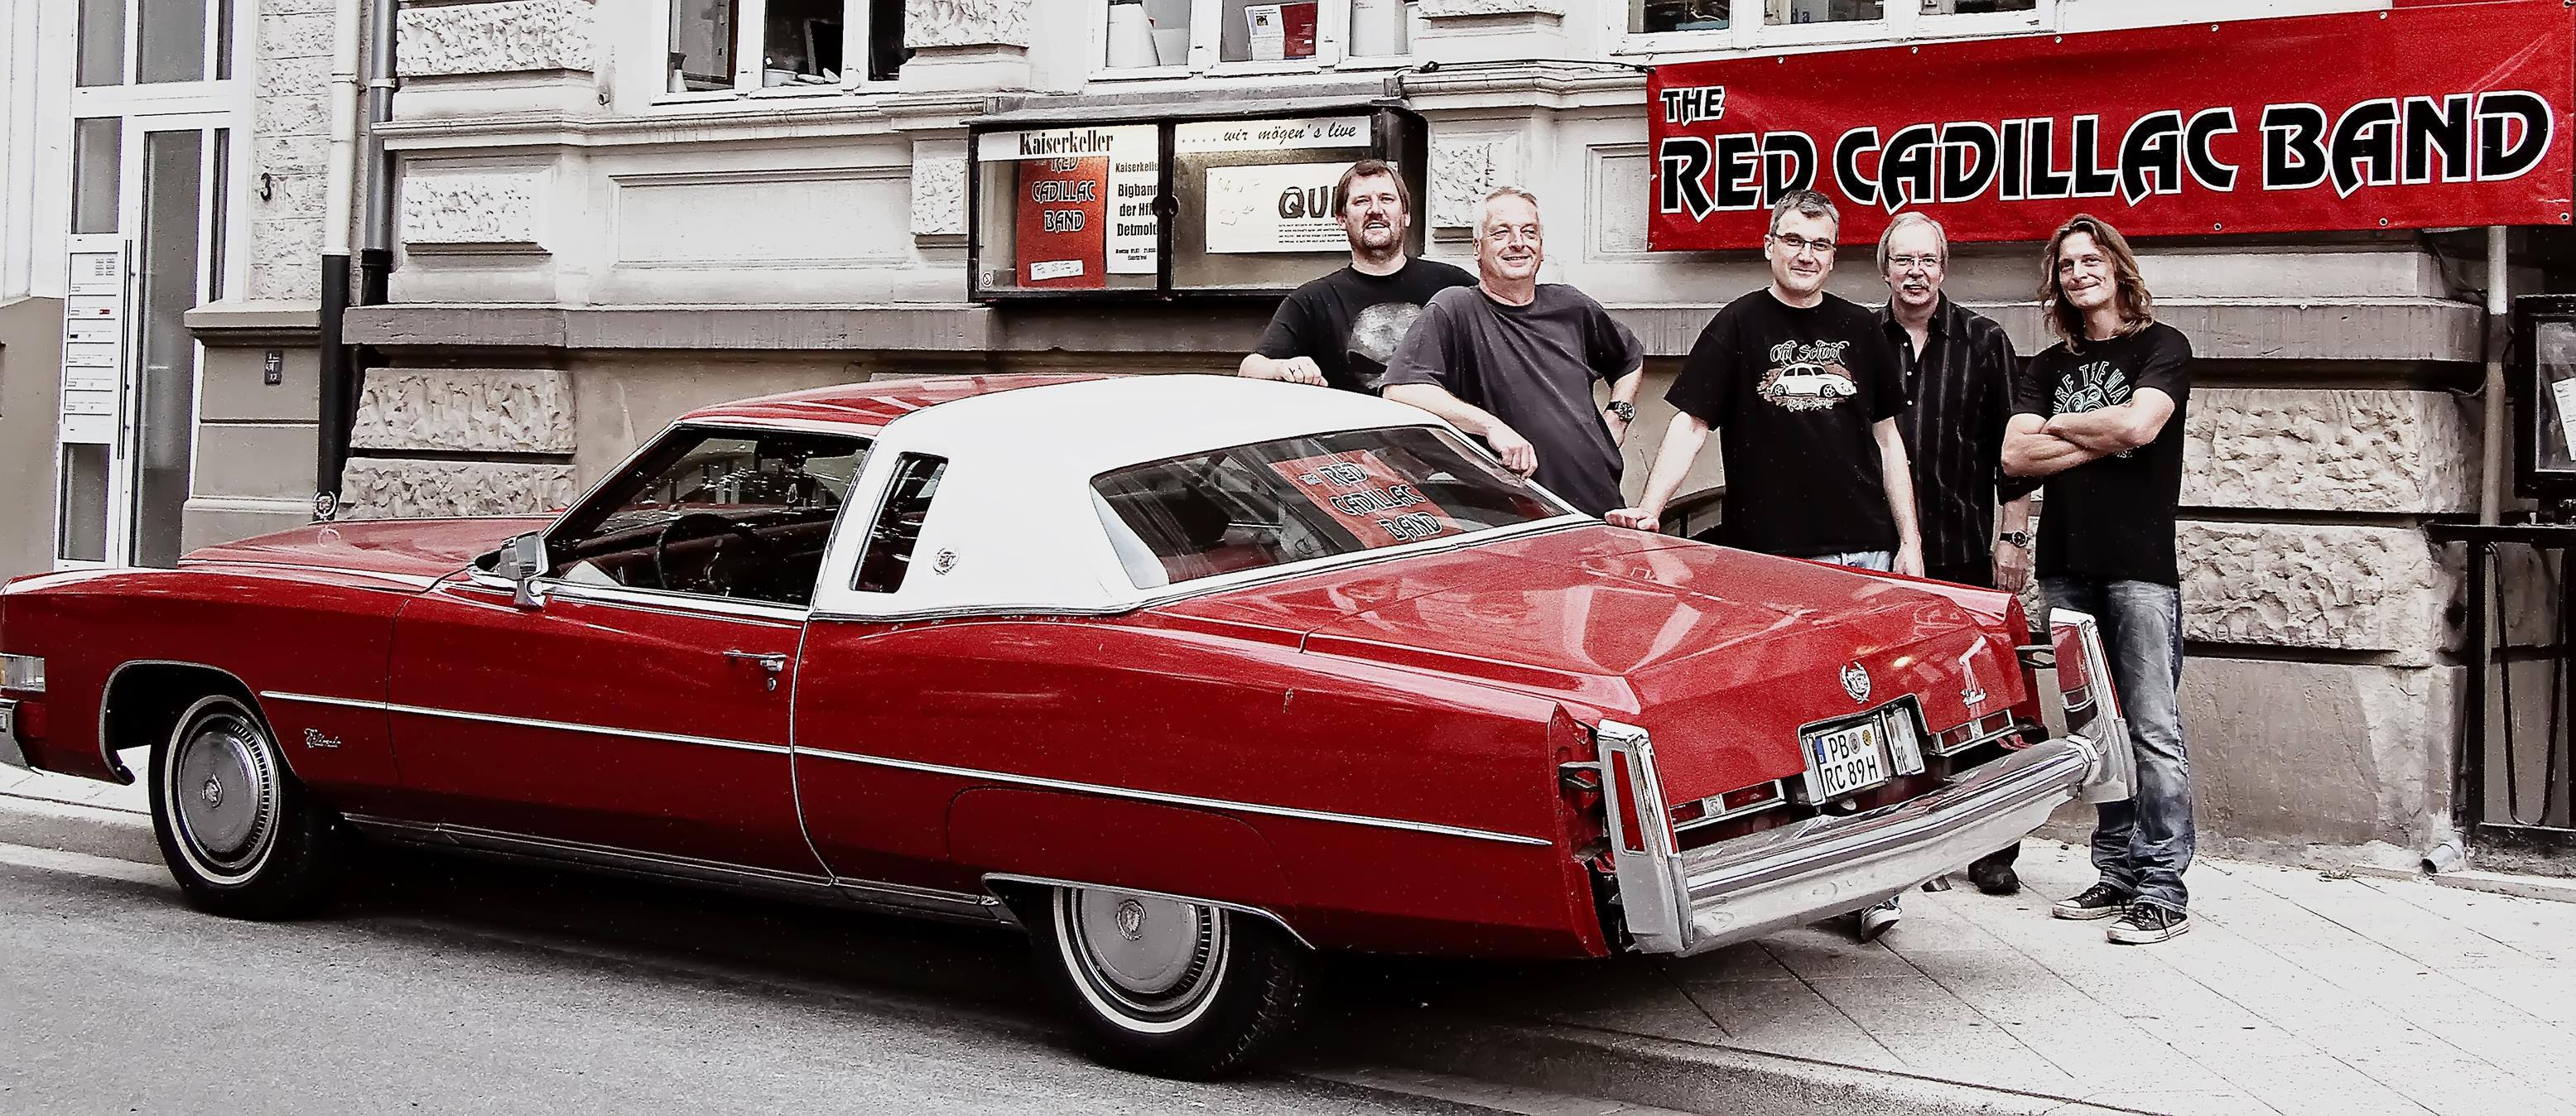 The Red Cadillac Band - Finest Party Rock since 1989 macht ihrem Namen alle Ehre